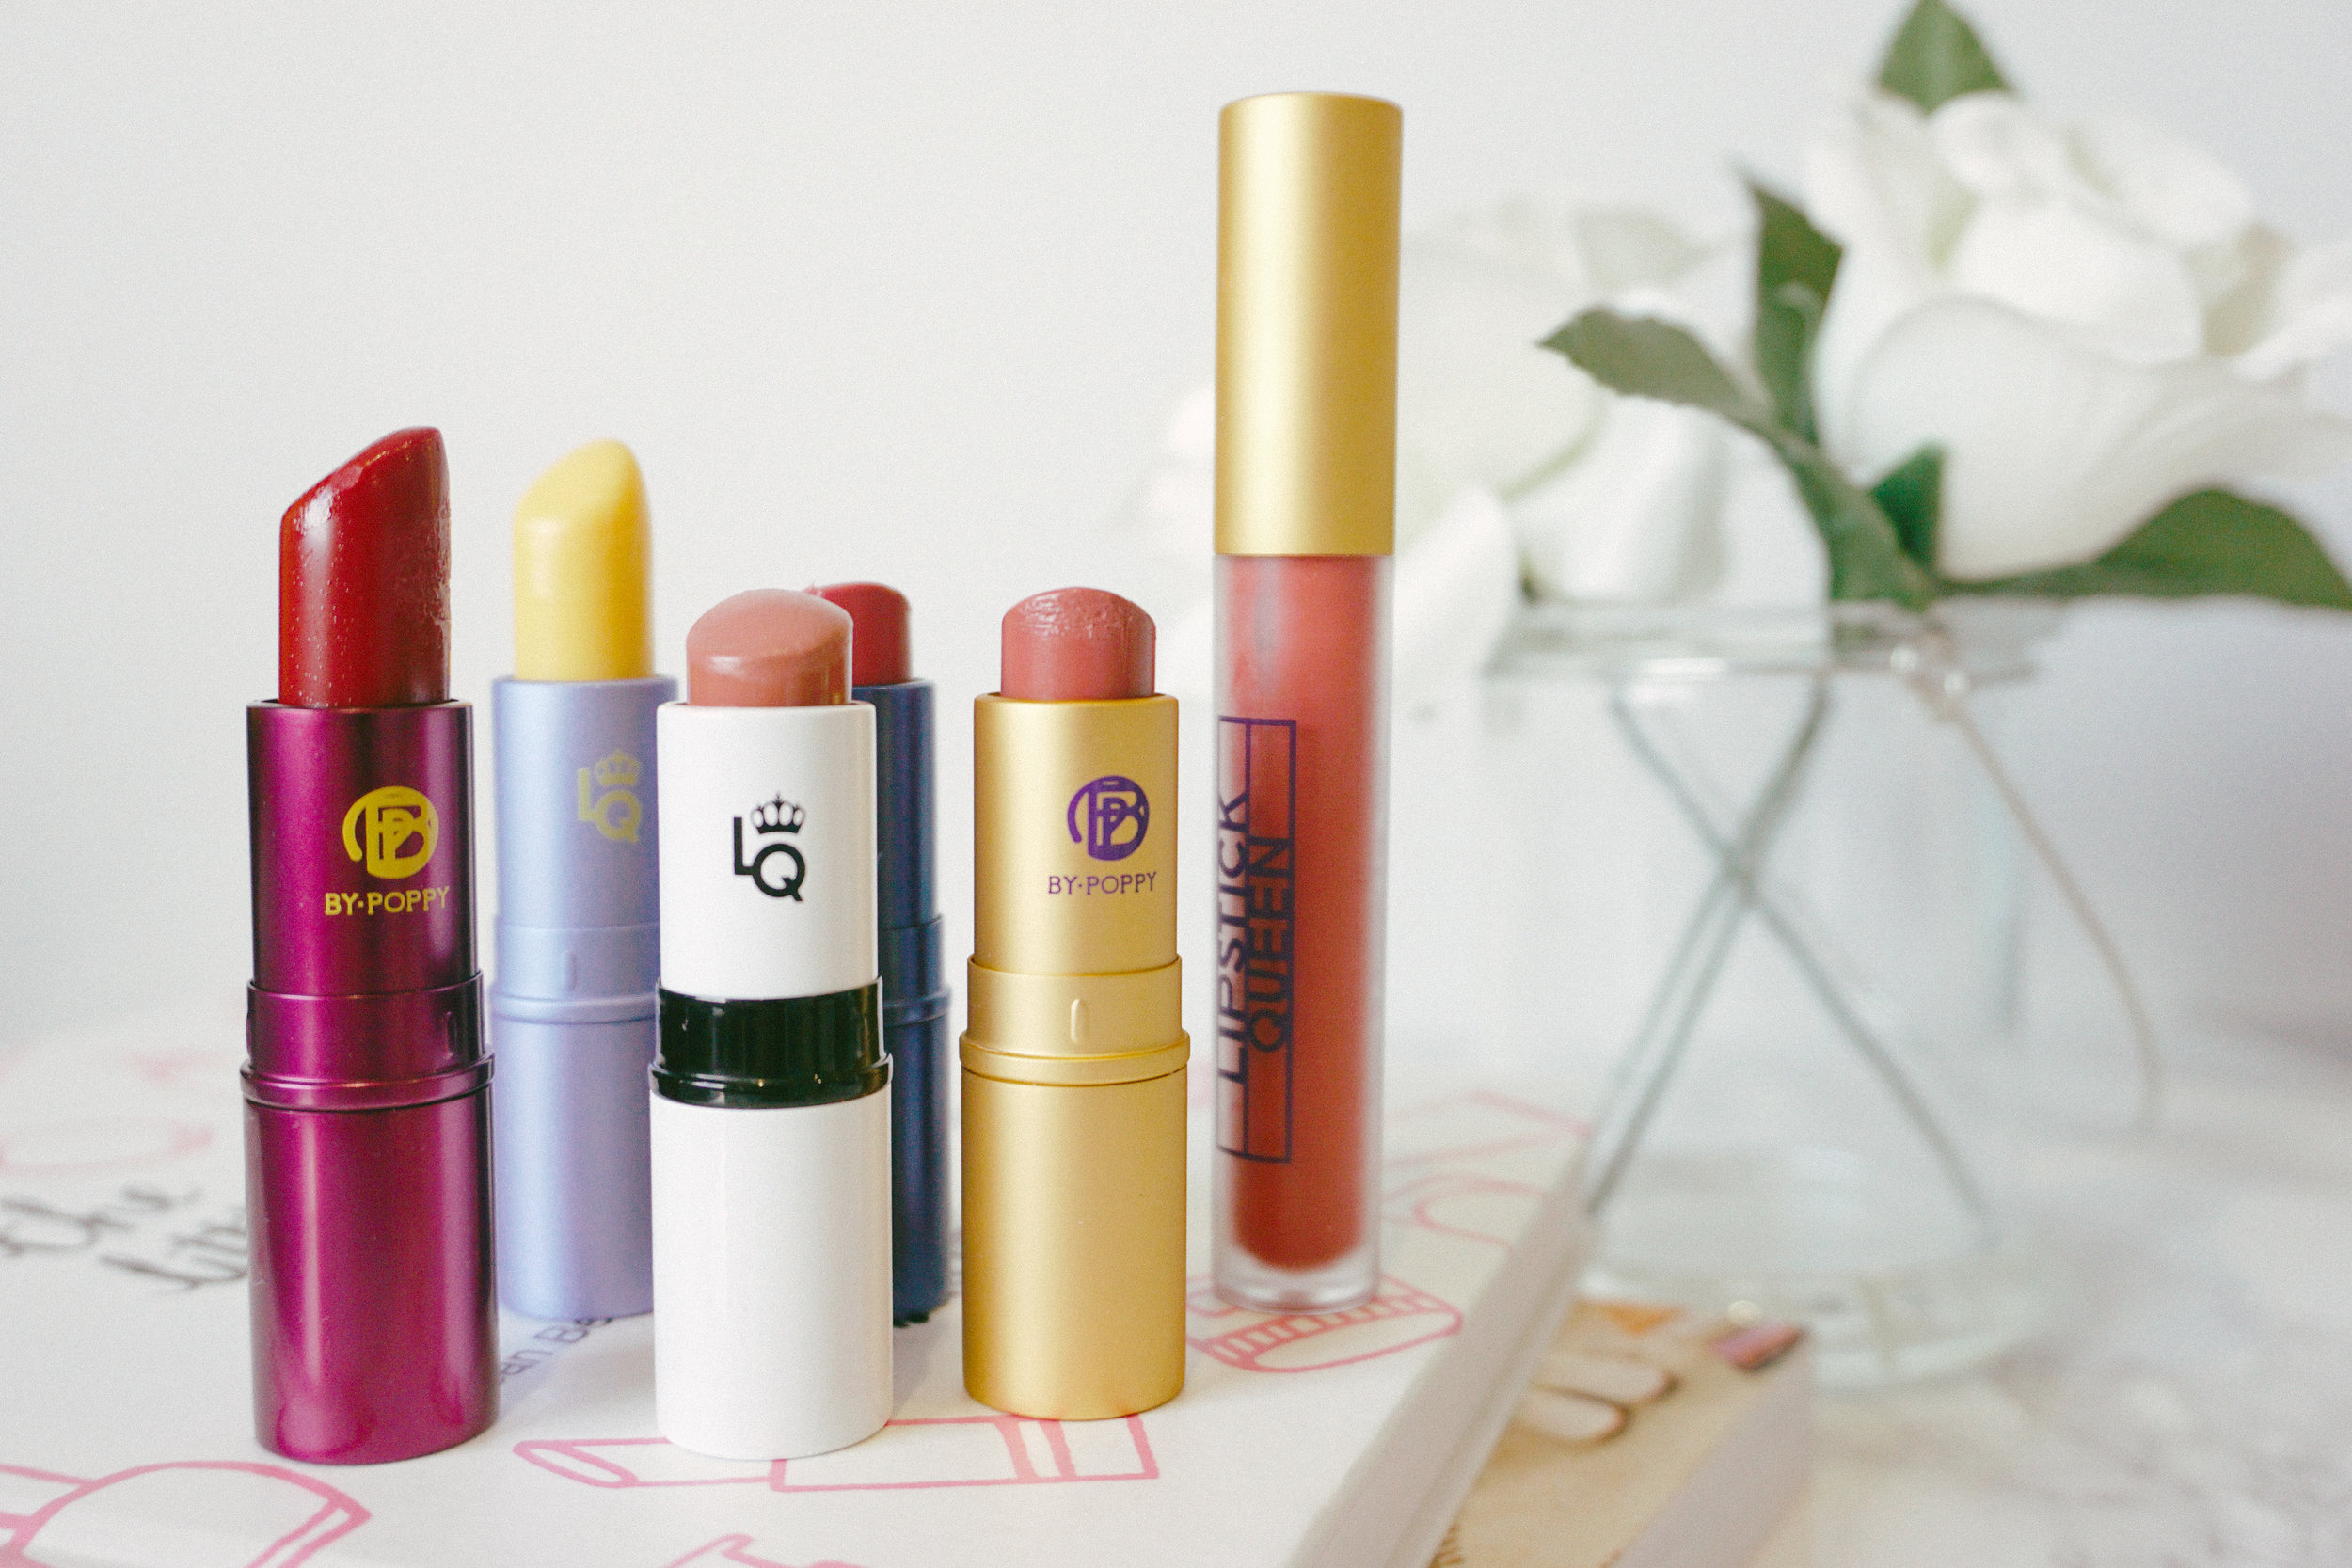 From left to right: Medieval, Mornin' Sunshine, Lipstick Chess in Pawn, Jean Queen, Saint Sheer Lipstick in Saint Nude, and Saint & Sinner Lip Tint in Rose